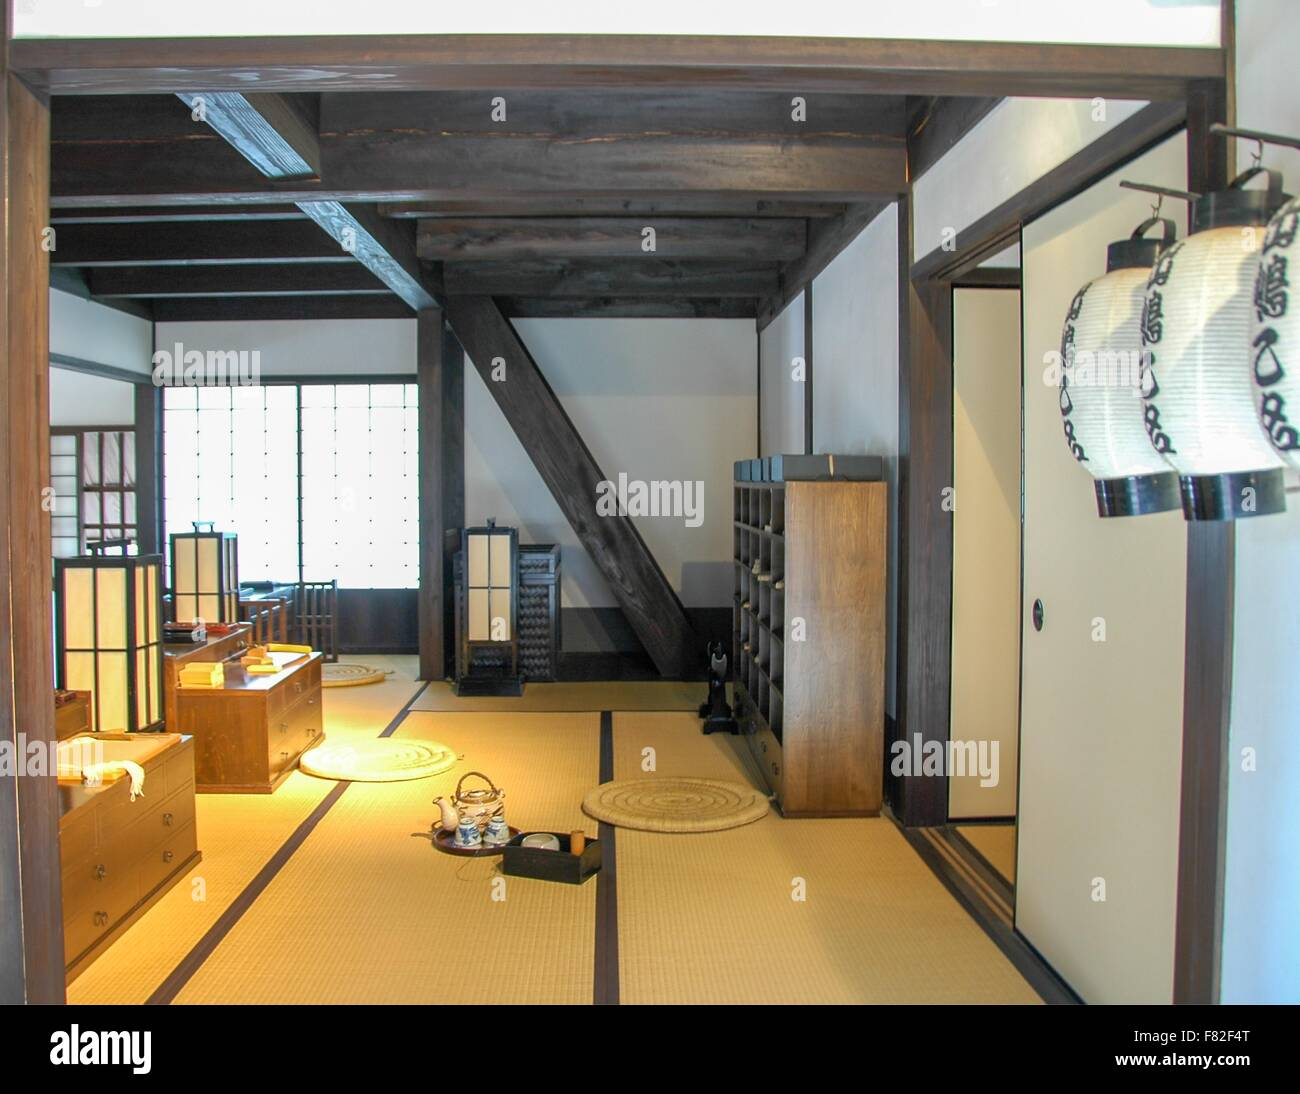 A display of an historical room with tatami mat floors. - Stock Image